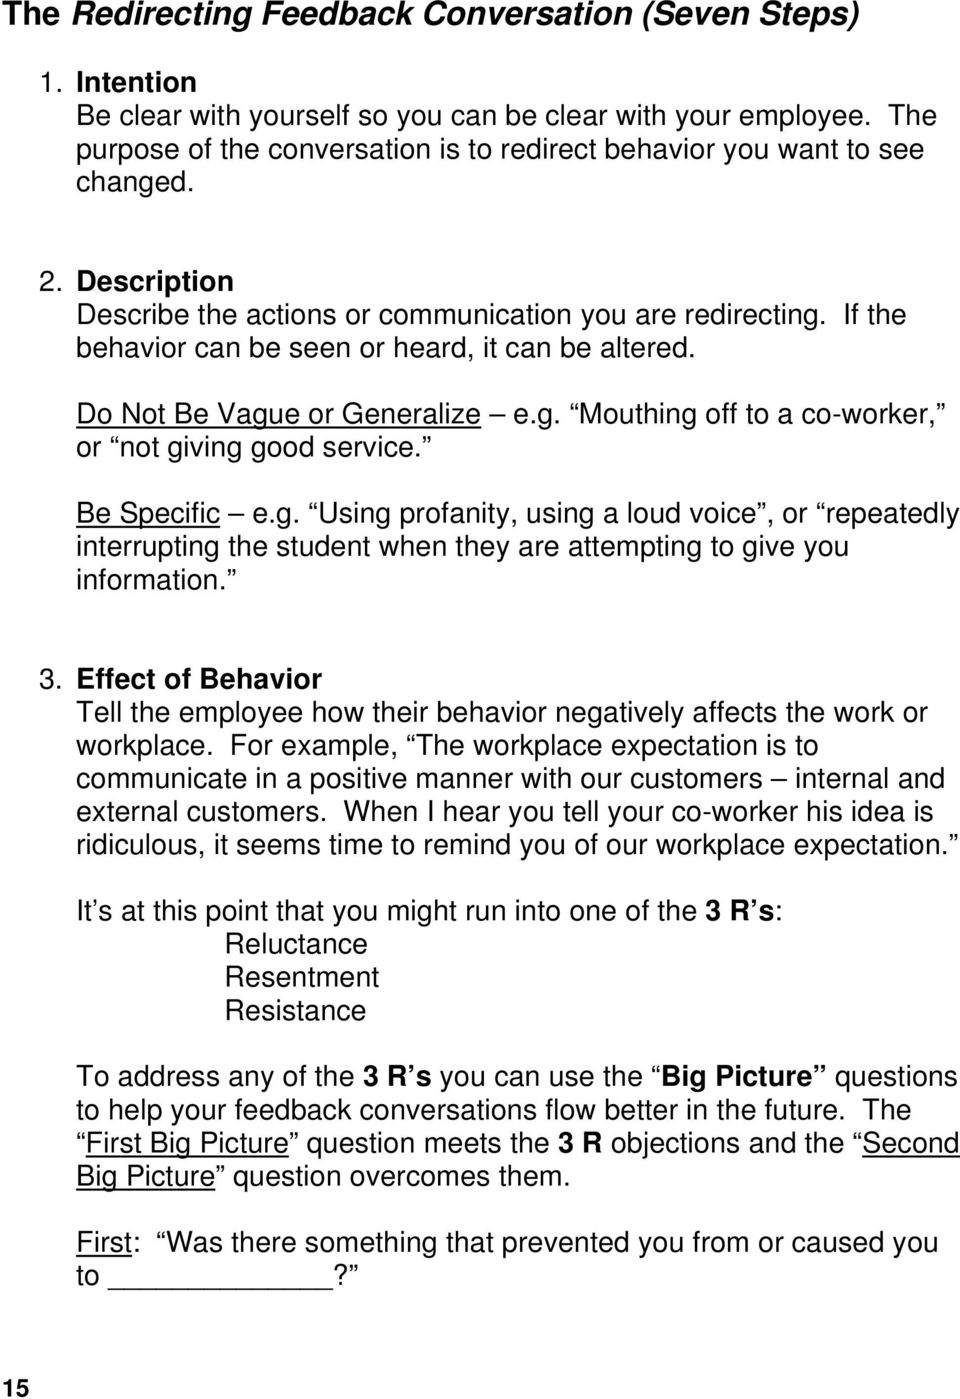 If the behavior can be seen or heard, it can be altered. Do Not Be Vague or Generalize e.g. Mouthing off to a co-worker, or not giving good service. Be Specific e.g. Using profanity, using a loud voice, or repeatedly interrupting the student when they are attempting to give you information.